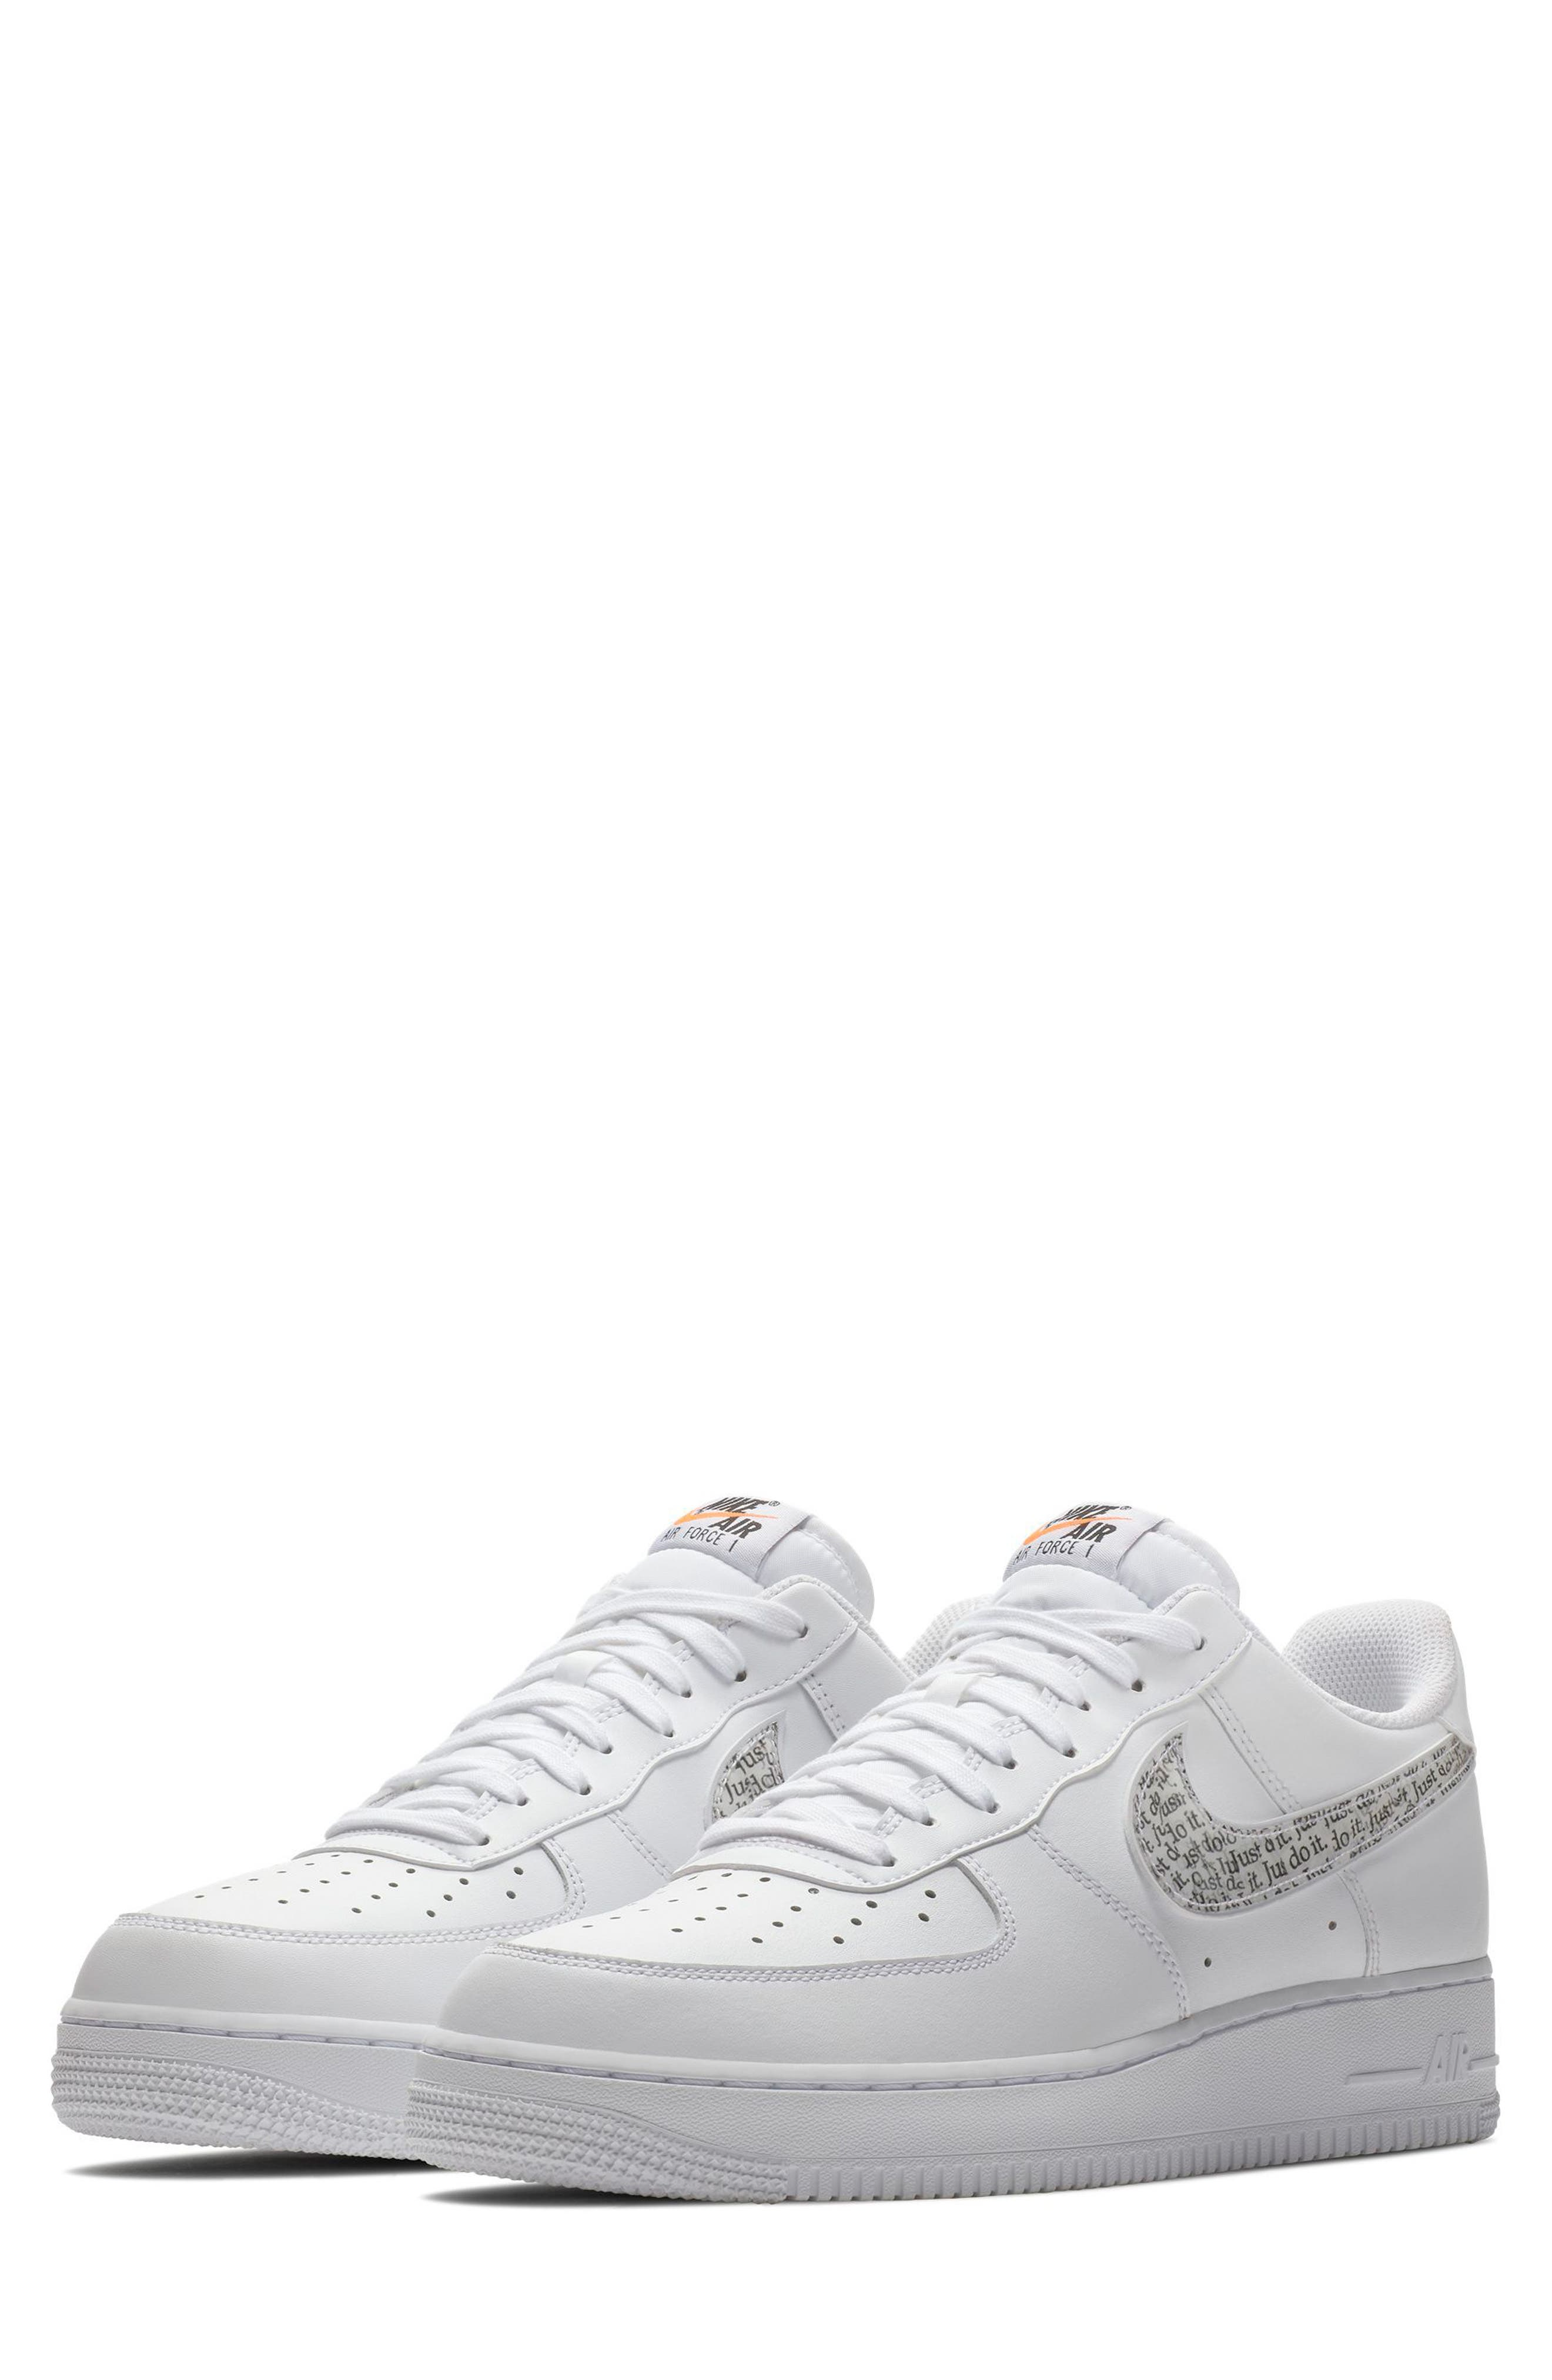 Air Force 1 '07 LV8 Just Do It Sneaker,                             Main thumbnail 1, color,                             100